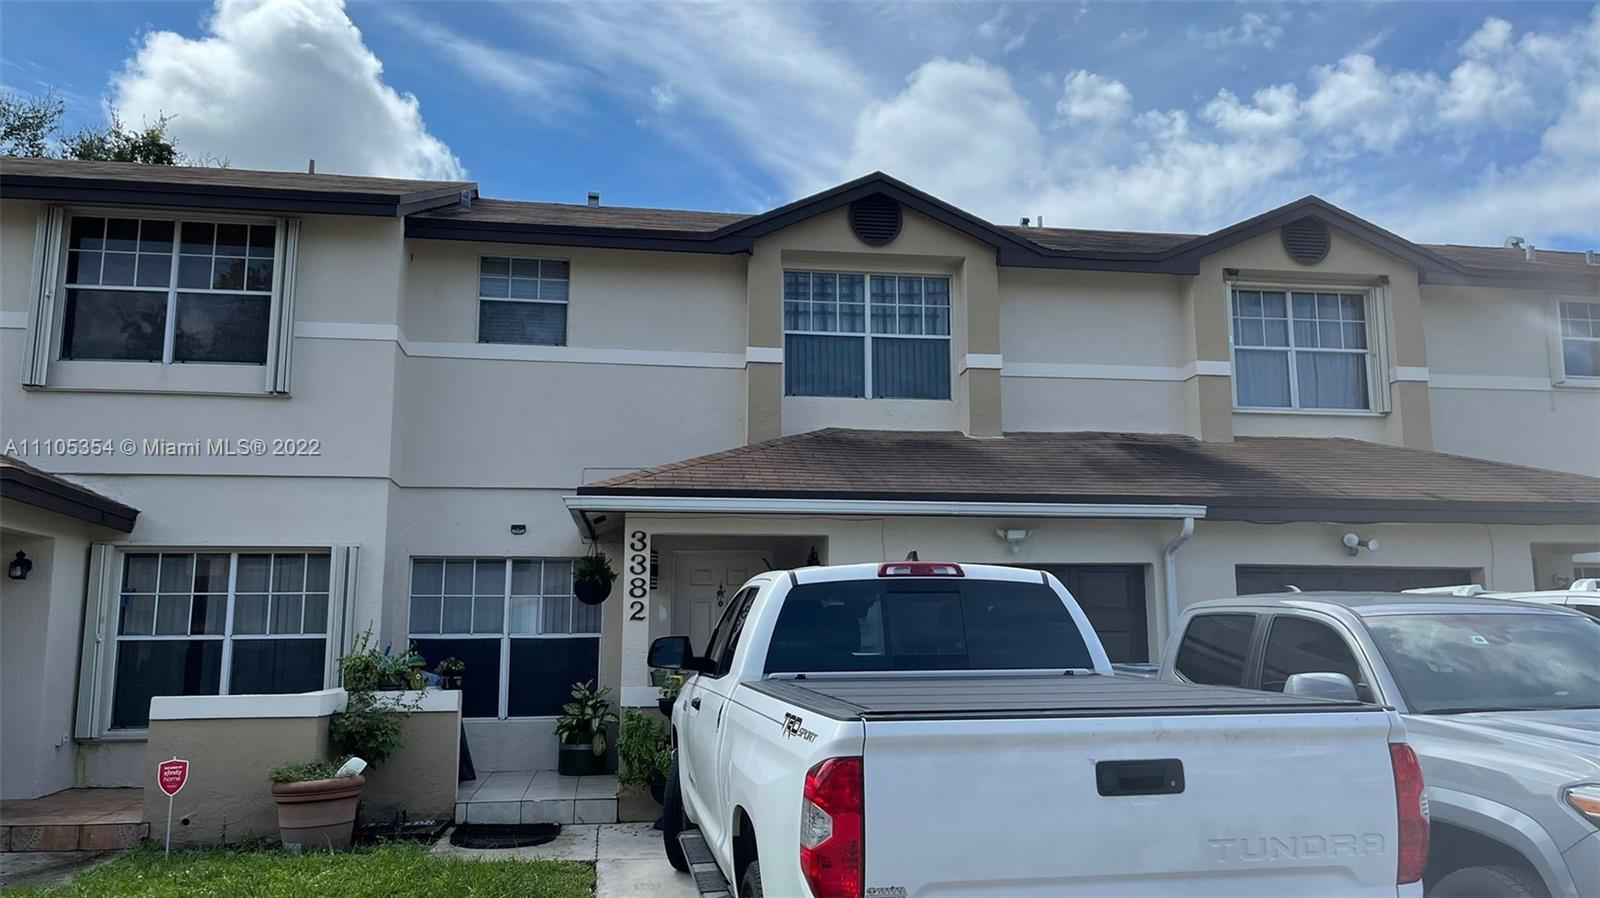 Excellent opportunity to own this charming townhouse perfectly located with closely access to the Miami's principal highways (1 mile to turnpike), (1.5 mile to palmetto), (3 miles to I95); quite gate community with security. 3 wide bedrooms and 2 1/2 bathrooms with 2 parking spaces, and plenty of guess parking spots very illuminated kitchen and 75% covered patio.